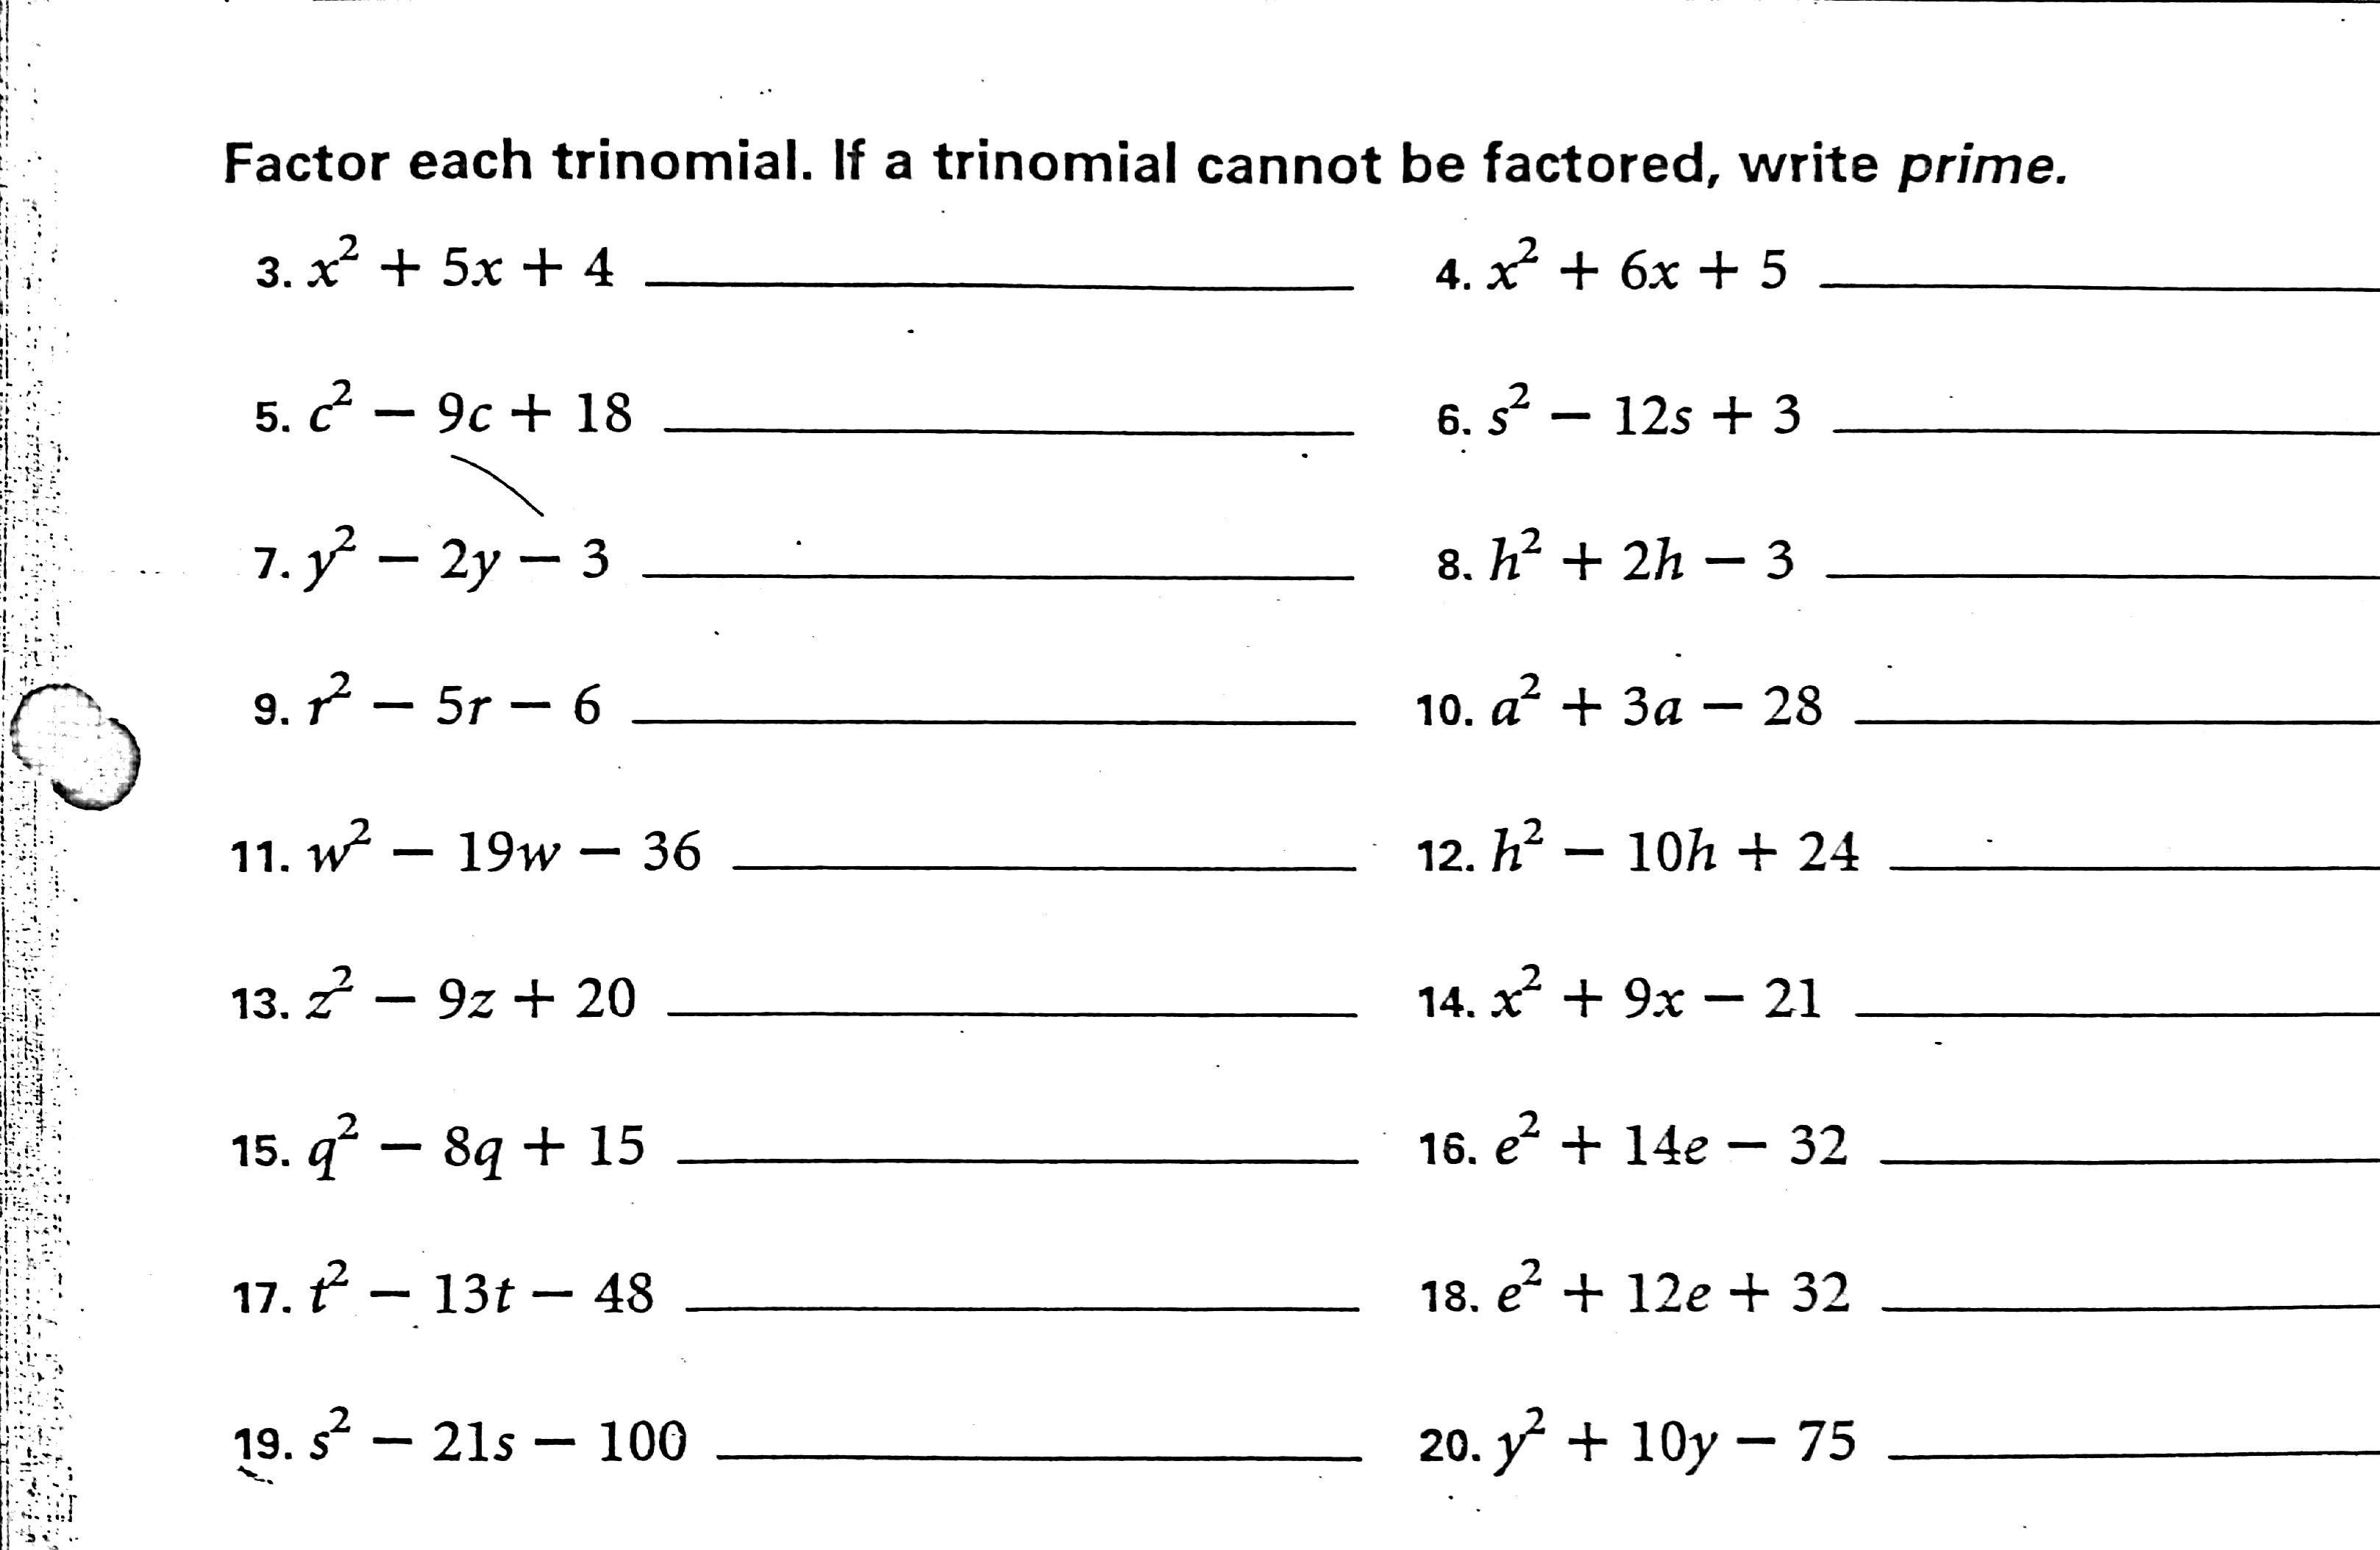 Proatmealus  Inspiring Factoring Worksheet  Delwfgcom With Likable Factoring Polynomials Practice Worksheet With Answers Coterraneo With Endearing Multiplication Worksheets  Times Tables Also Topographic Map Symbols Worksheet In Addition Animal Sorting Worksheet And Doubles Addition Worksheets As Well As Rd Grade Social Studies Worksheets Free Printables Additionally Nuclear Chemistry Worksheets From Delwfgcom With Proatmealus  Likable Factoring Worksheet  Delwfgcom With Endearing Factoring Polynomials Practice Worksheet With Answers Coterraneo And Inspiring Multiplication Worksheets  Times Tables Also Topographic Map Symbols Worksheet In Addition Animal Sorting Worksheet From Delwfgcom